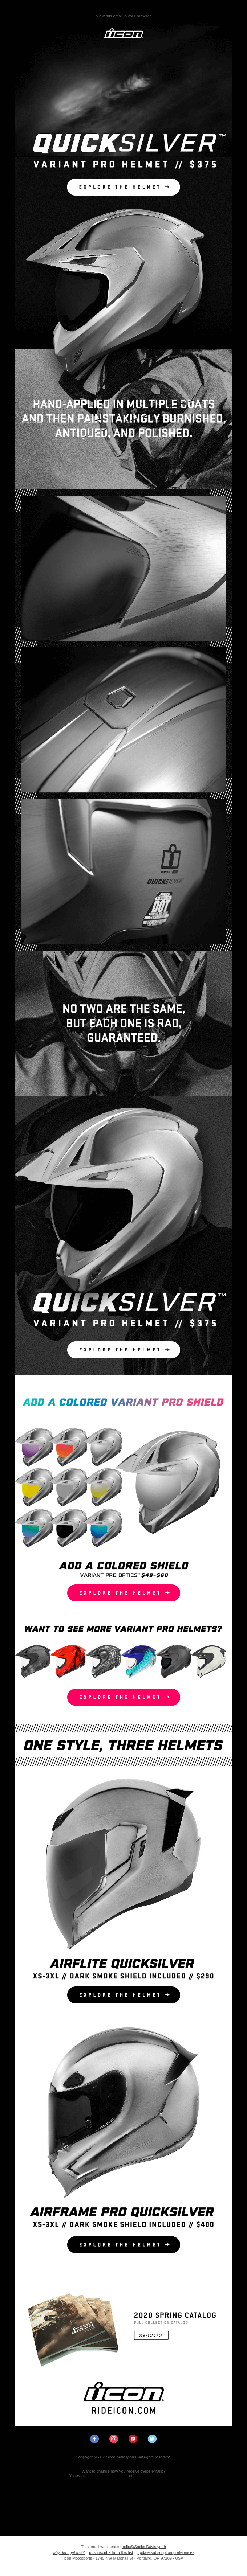 No Two Are The Same - The Variant Pro Quicksilver